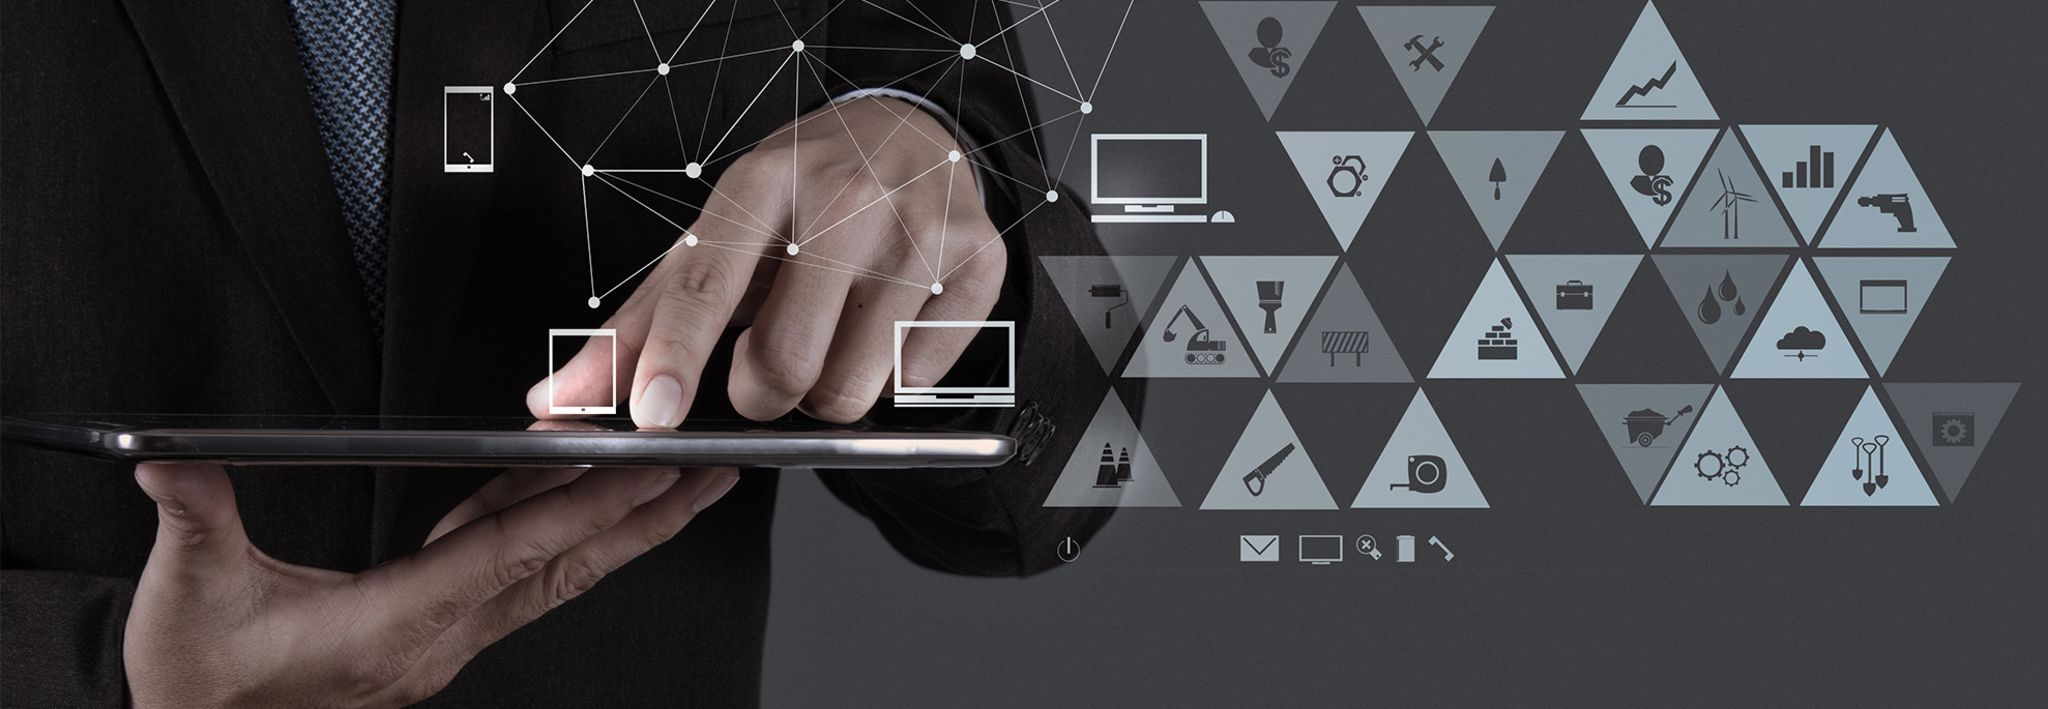 A man is holding a tablet with logistics and supply chain icons.